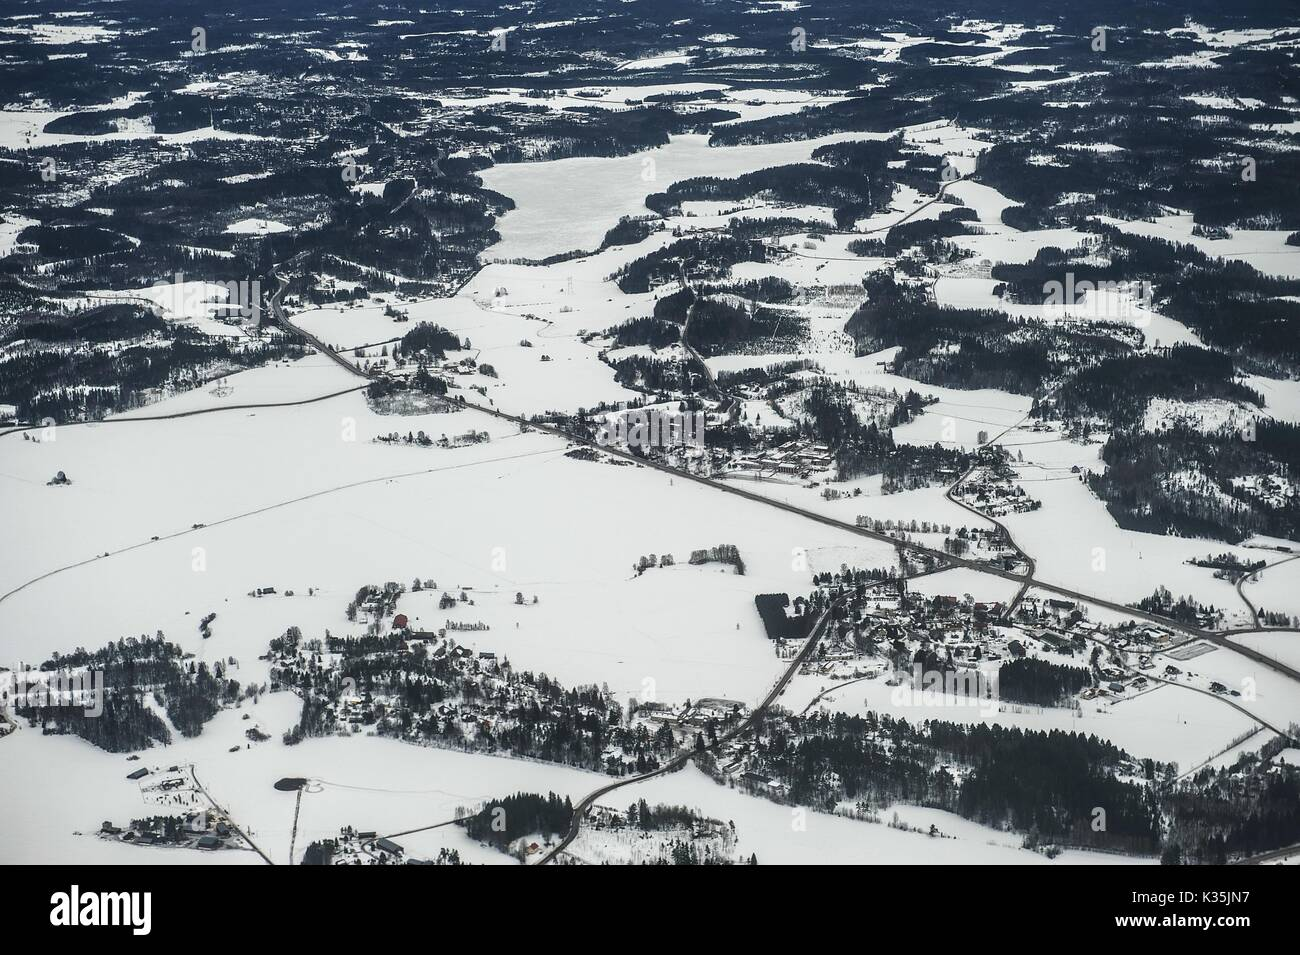 Finnish landscape from the air - Stock Image